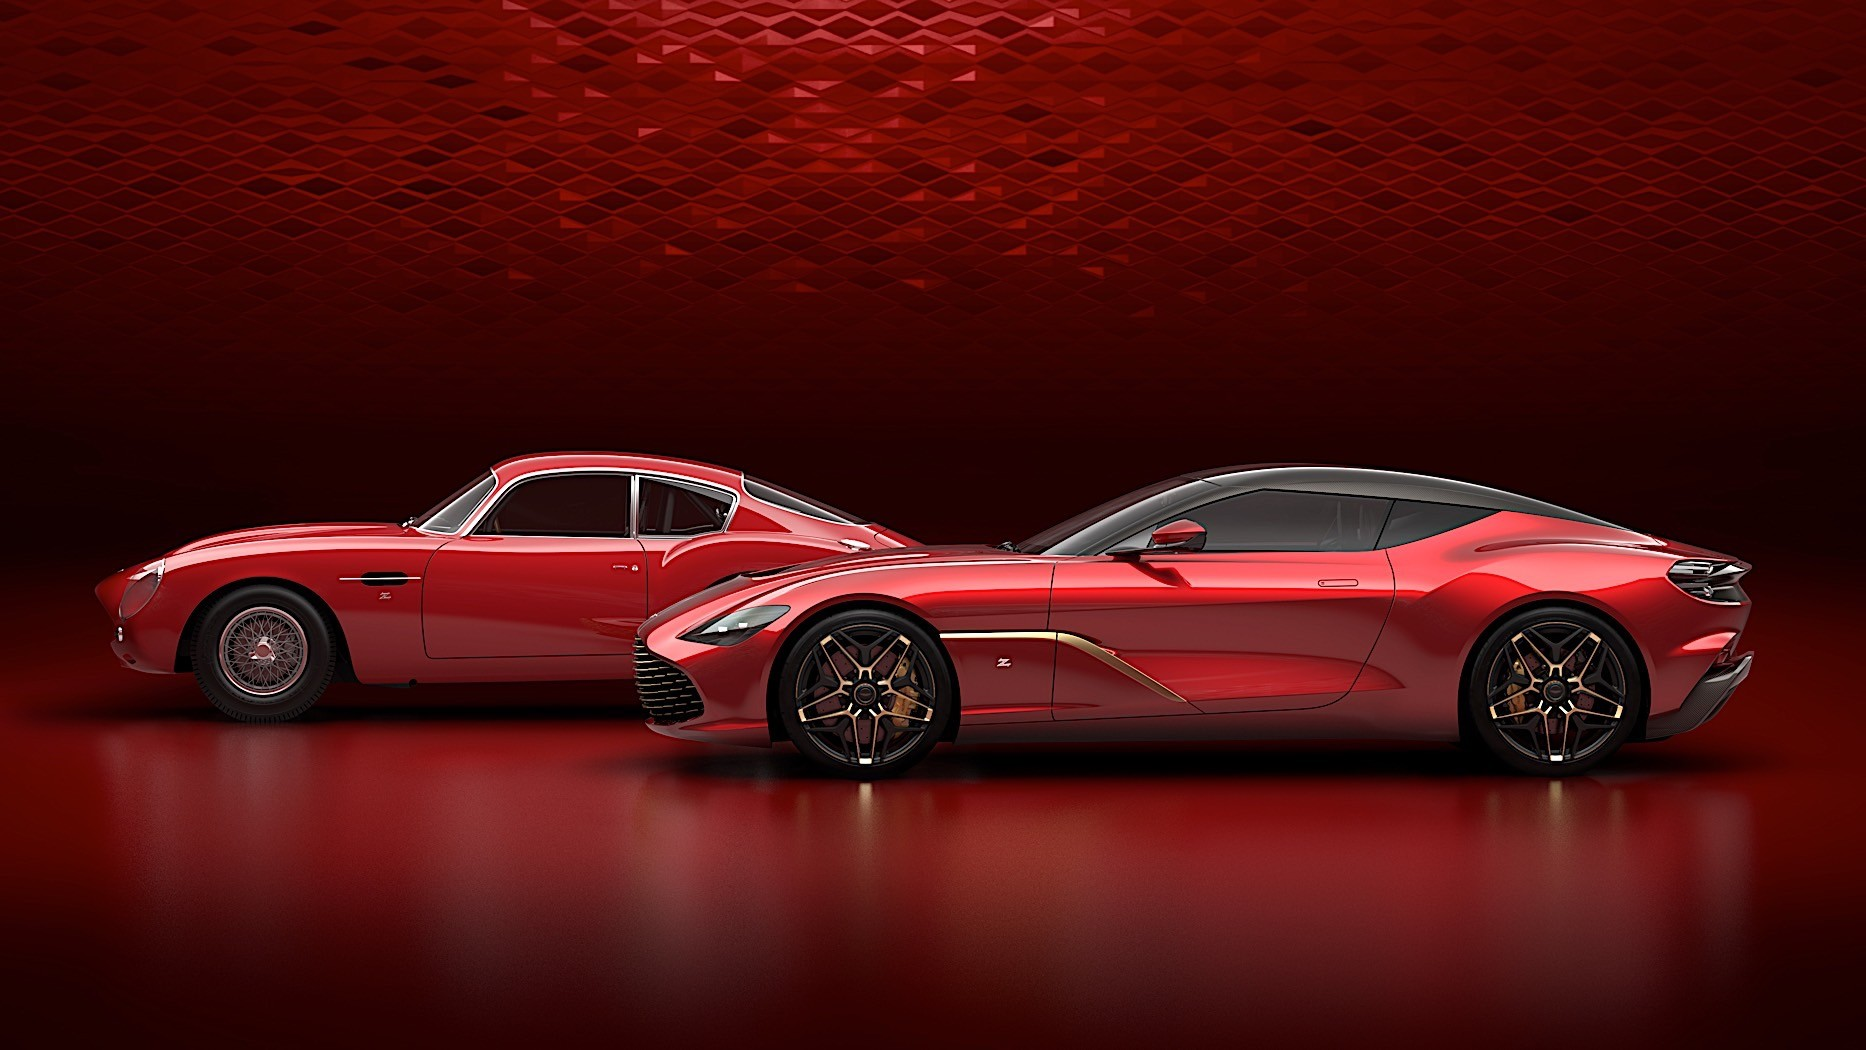 Aston Martin DBS GT Zagato Revealed with Shapeshifting Front Grille